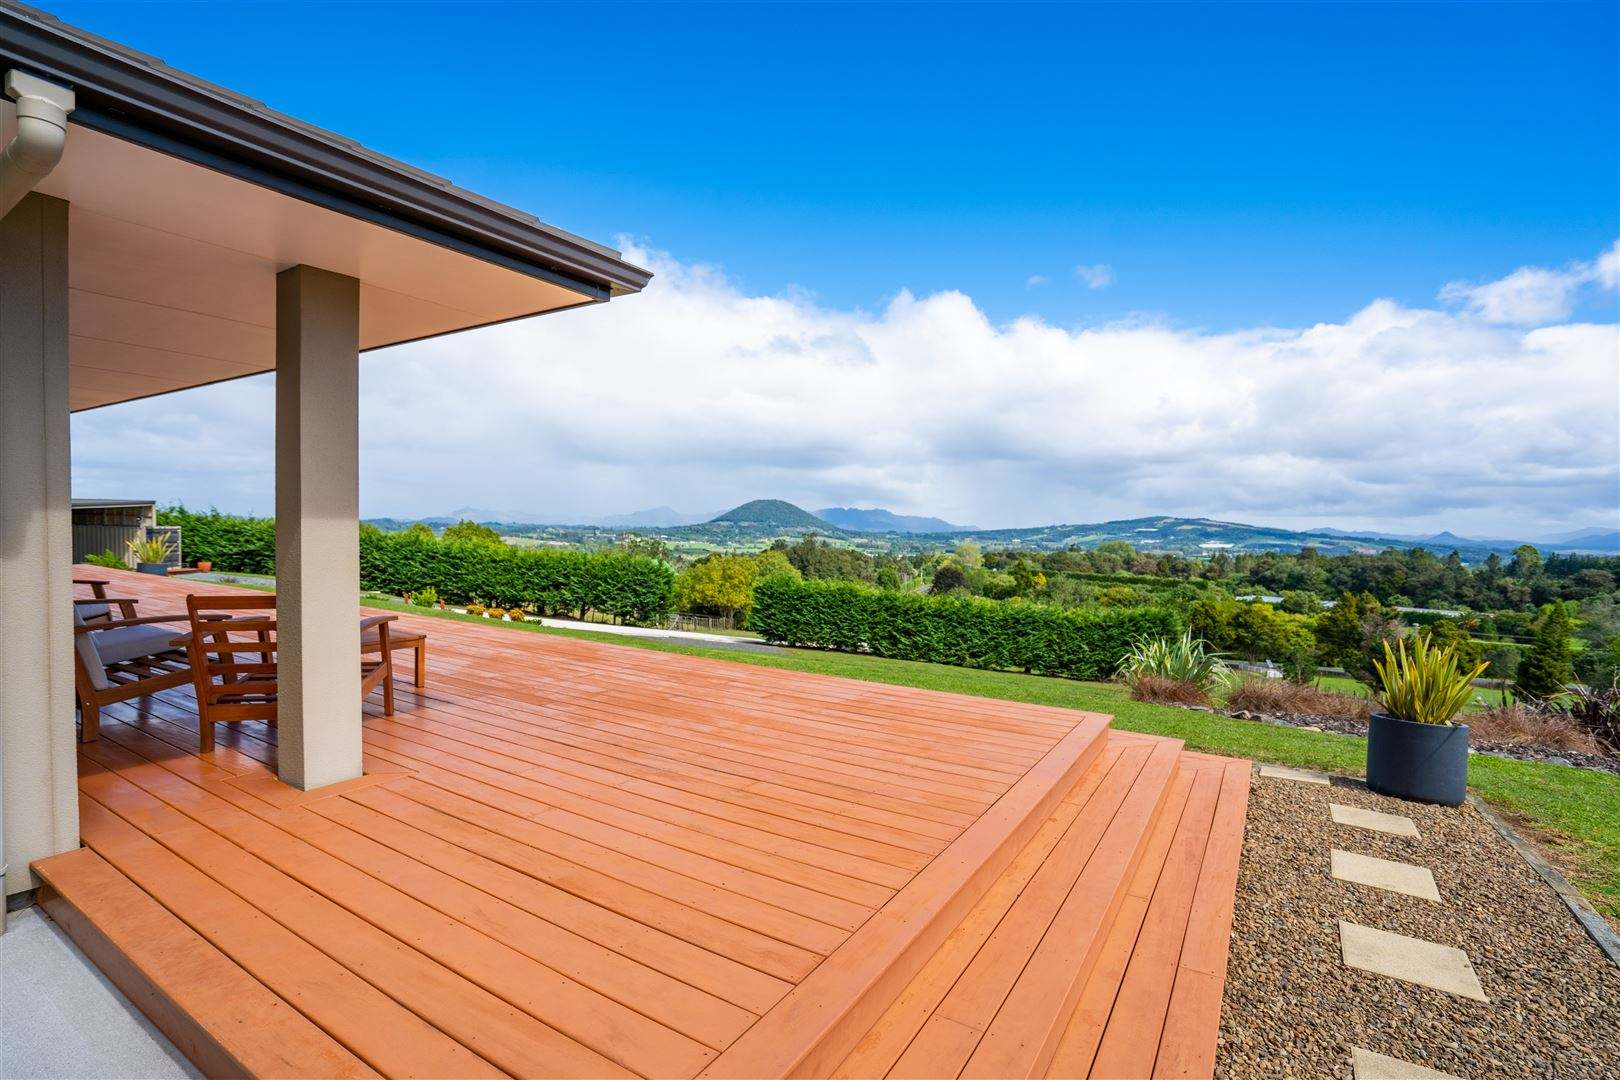 Maungatapere 4房 Elevated Family Home with World Class Views